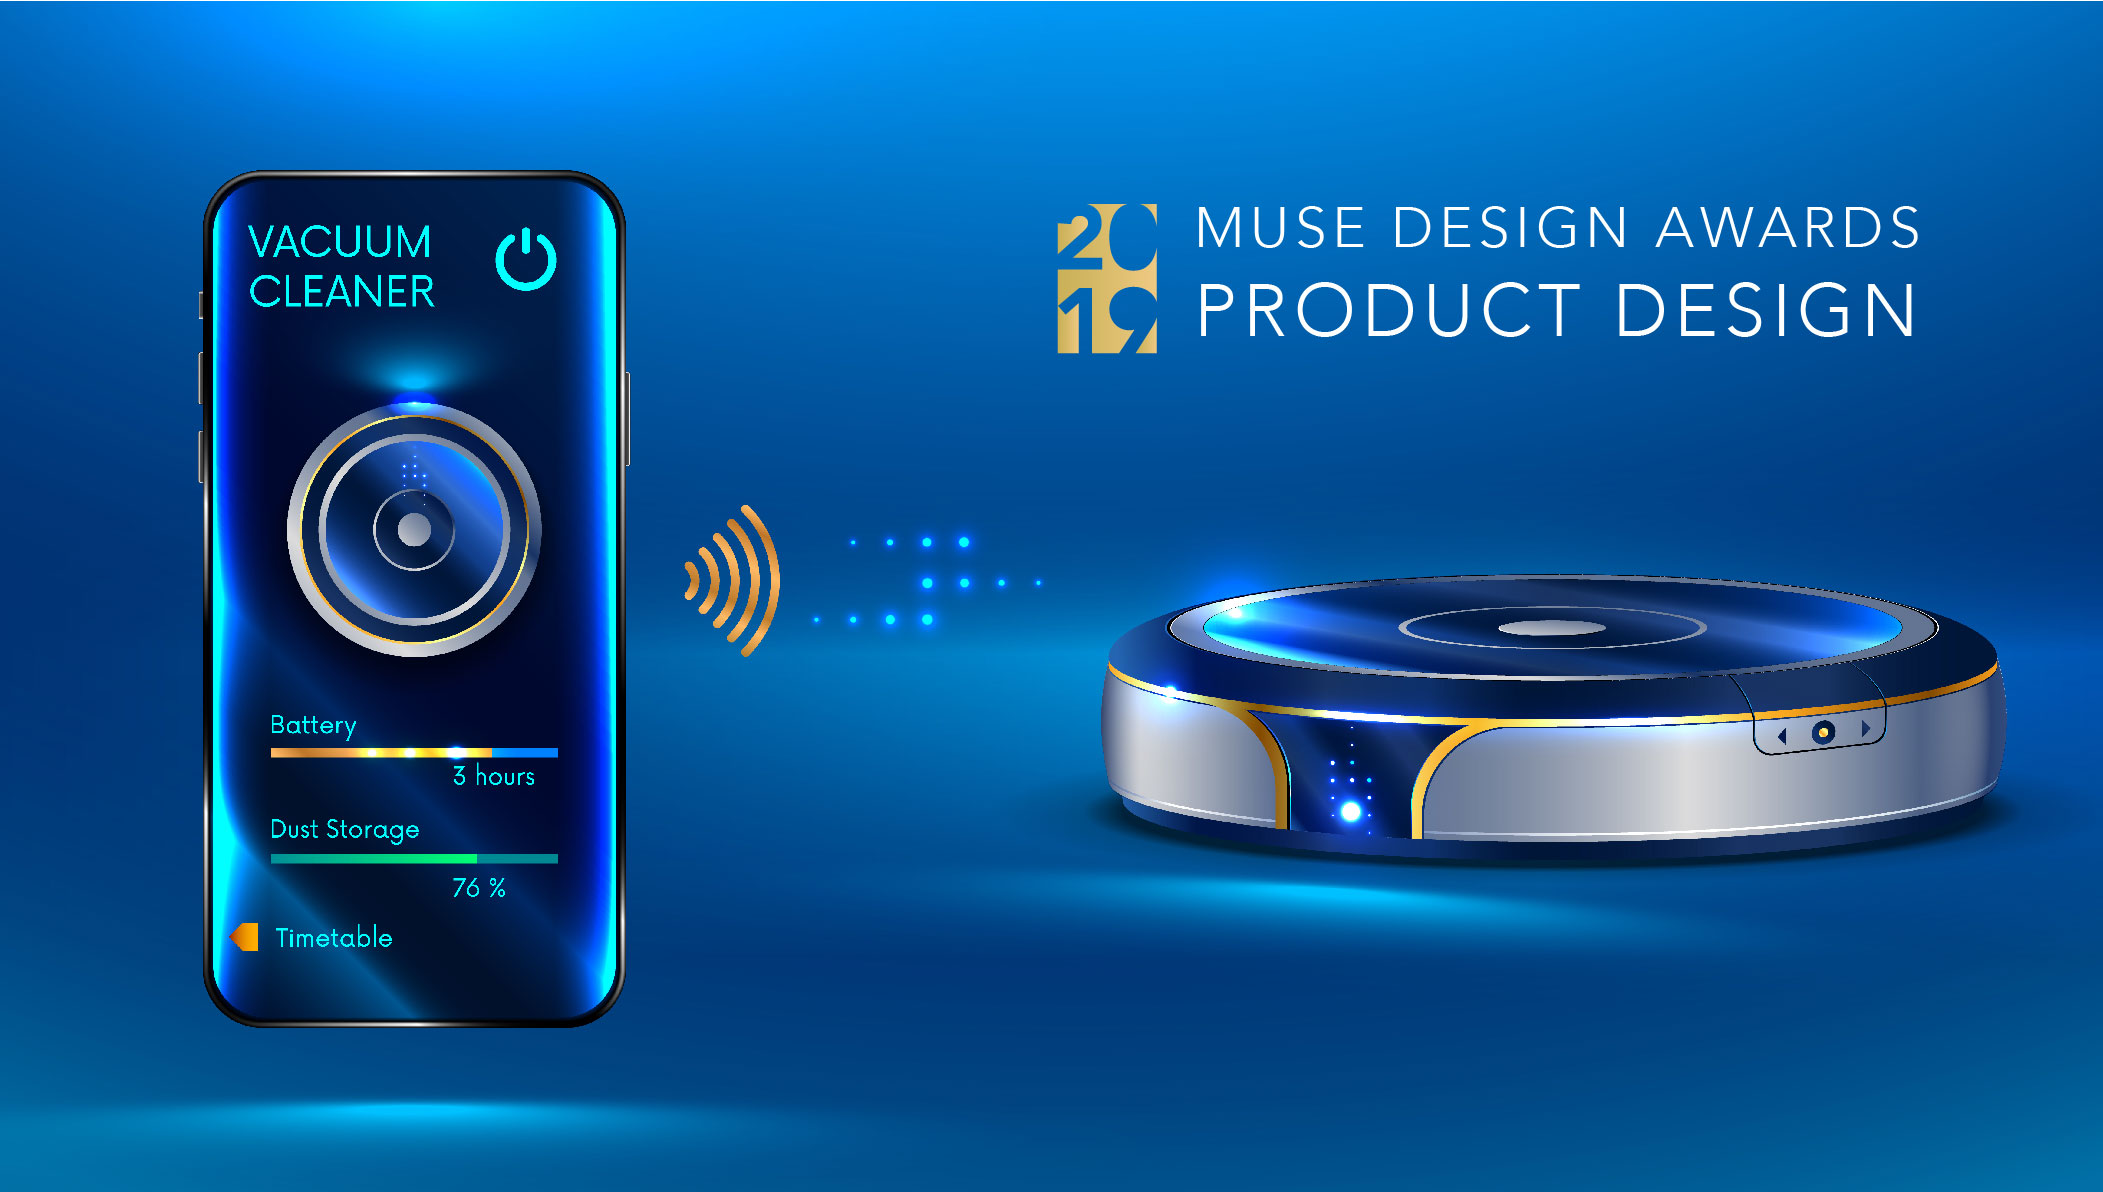 MUSE Product Design